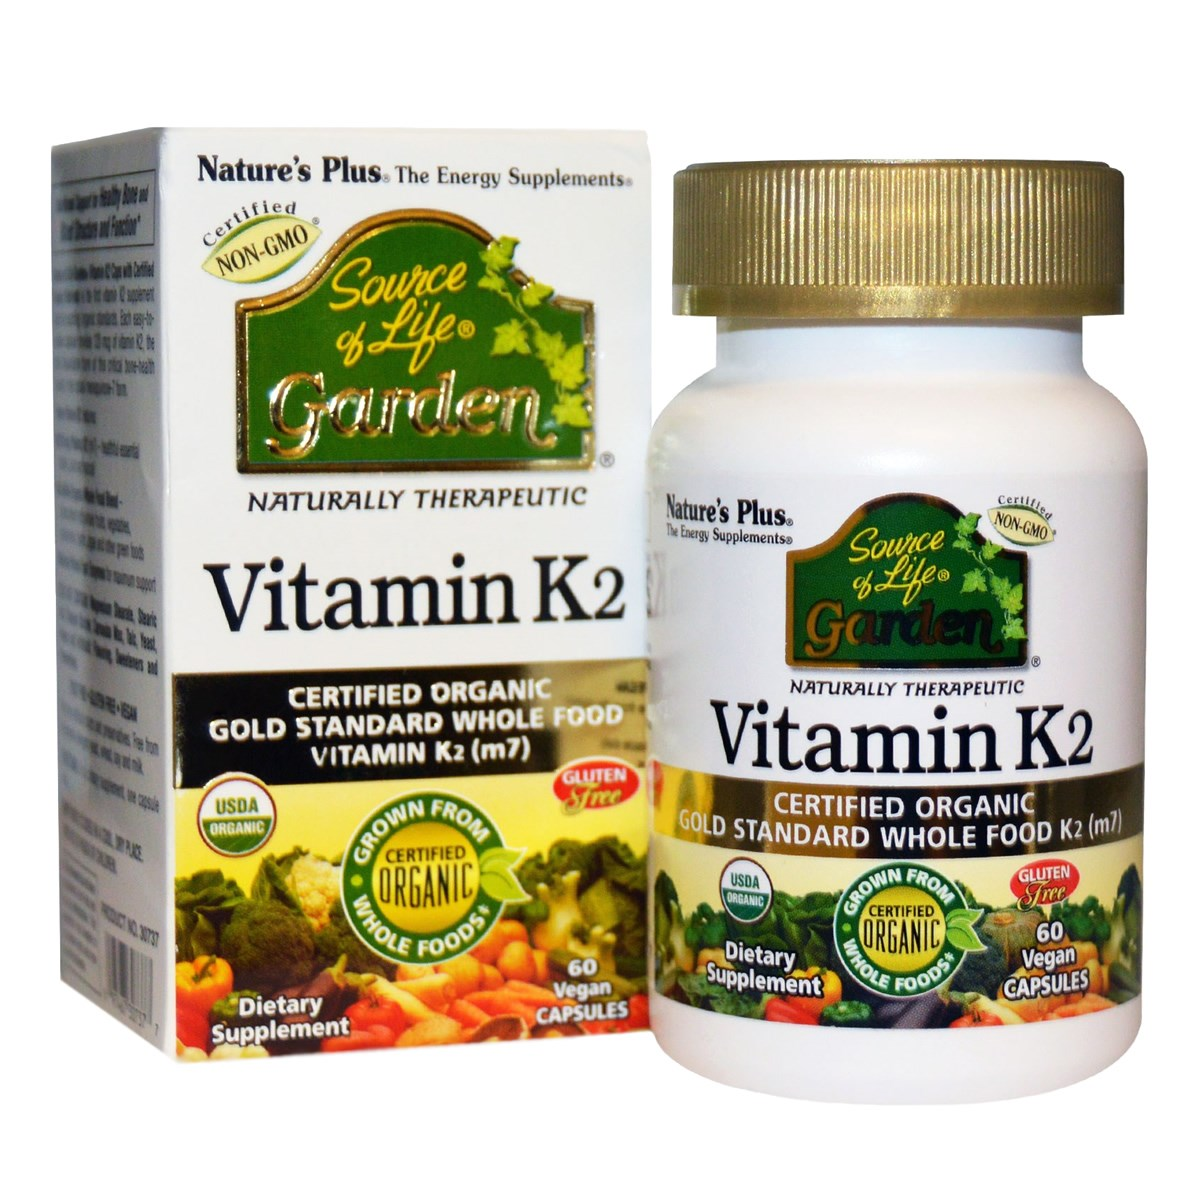 Natures Plus Source of Life Garden Vitamin K2 120 mcg Vcaps